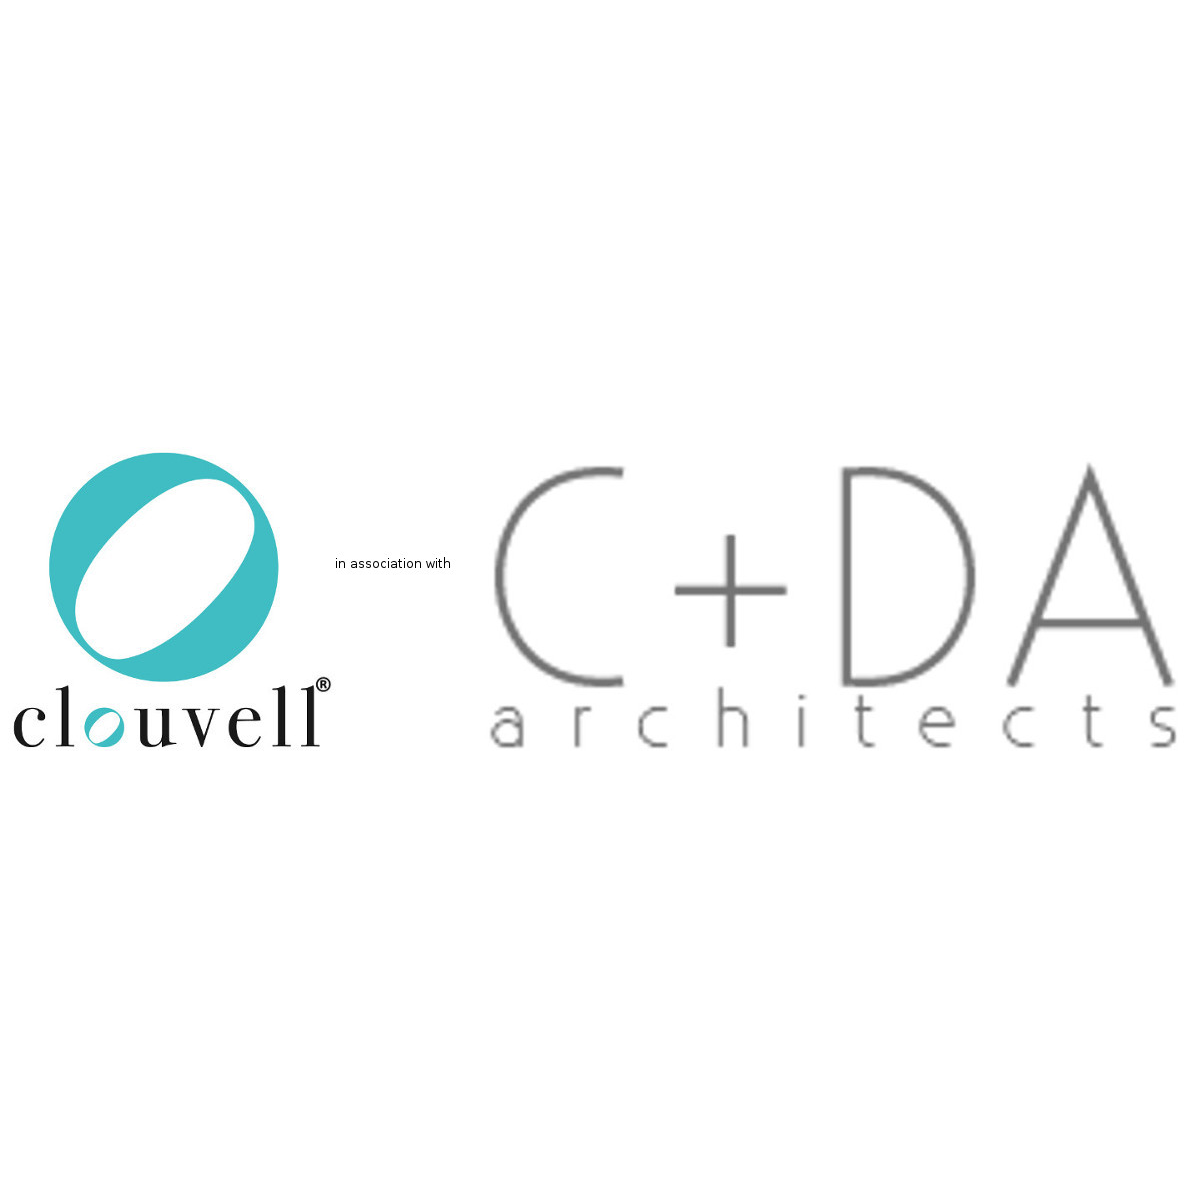 Londra: siglata partnership strategica tra CLOUVELL e C+DA Architects